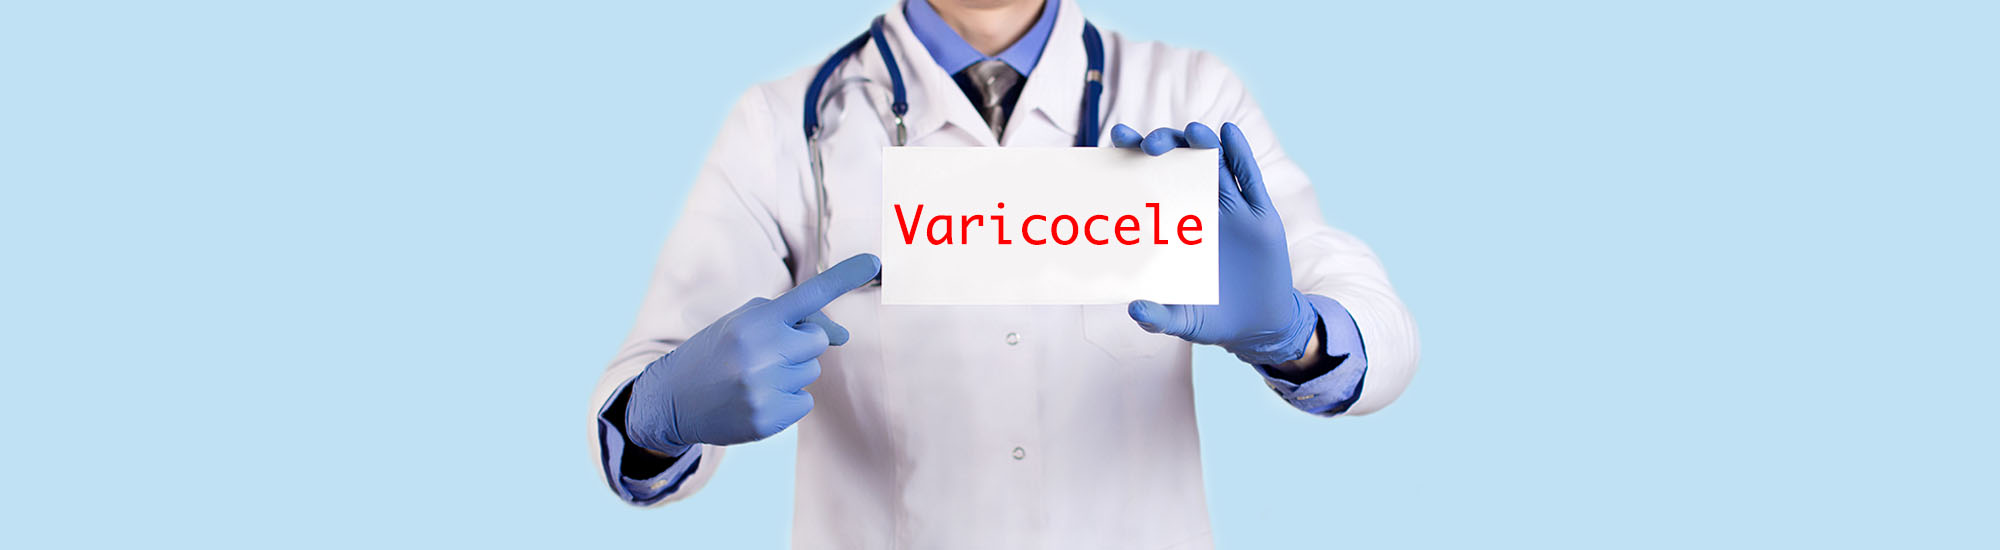 Ayurvedic treatment for Varicocele Diagnosis